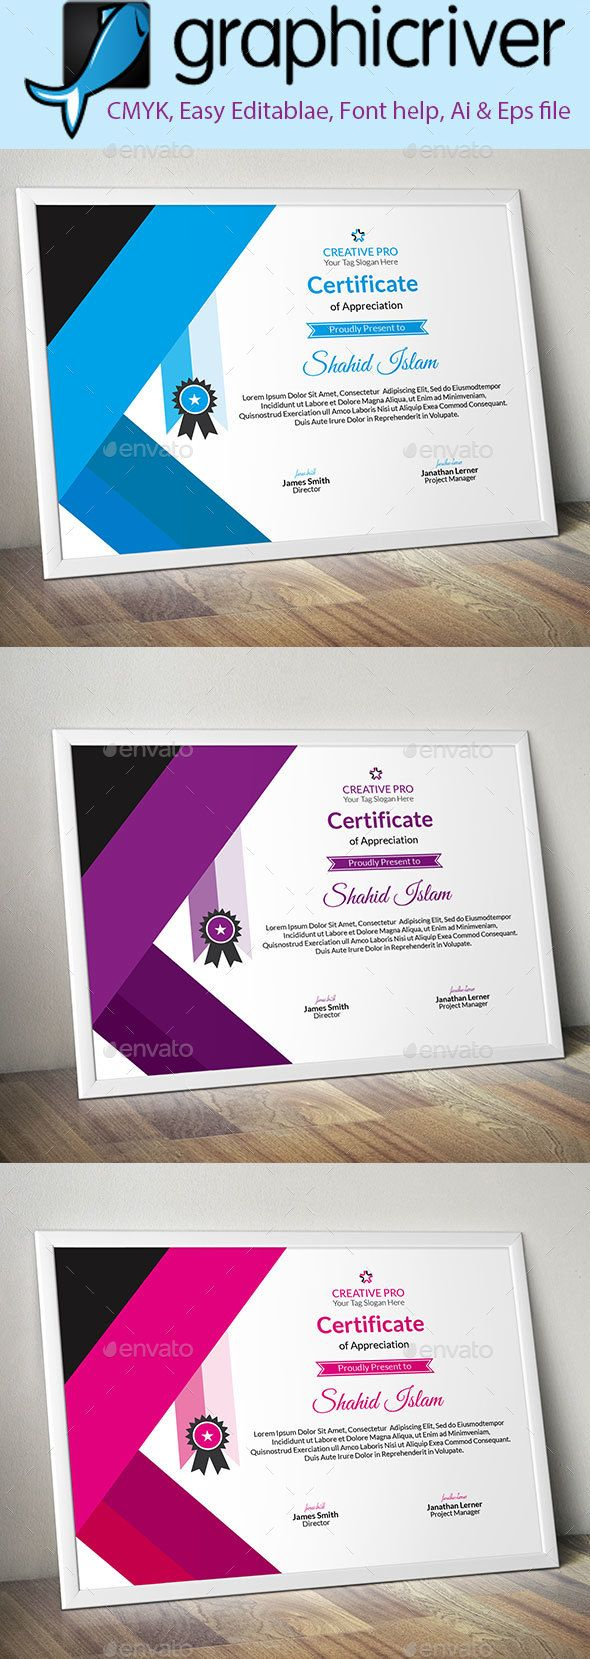 #Corporate #Certificate #template (7) - Certificates Stationery #design. download: https://graphicriver.net/item/corporate-certificate-7/20315829?ref=yinkira